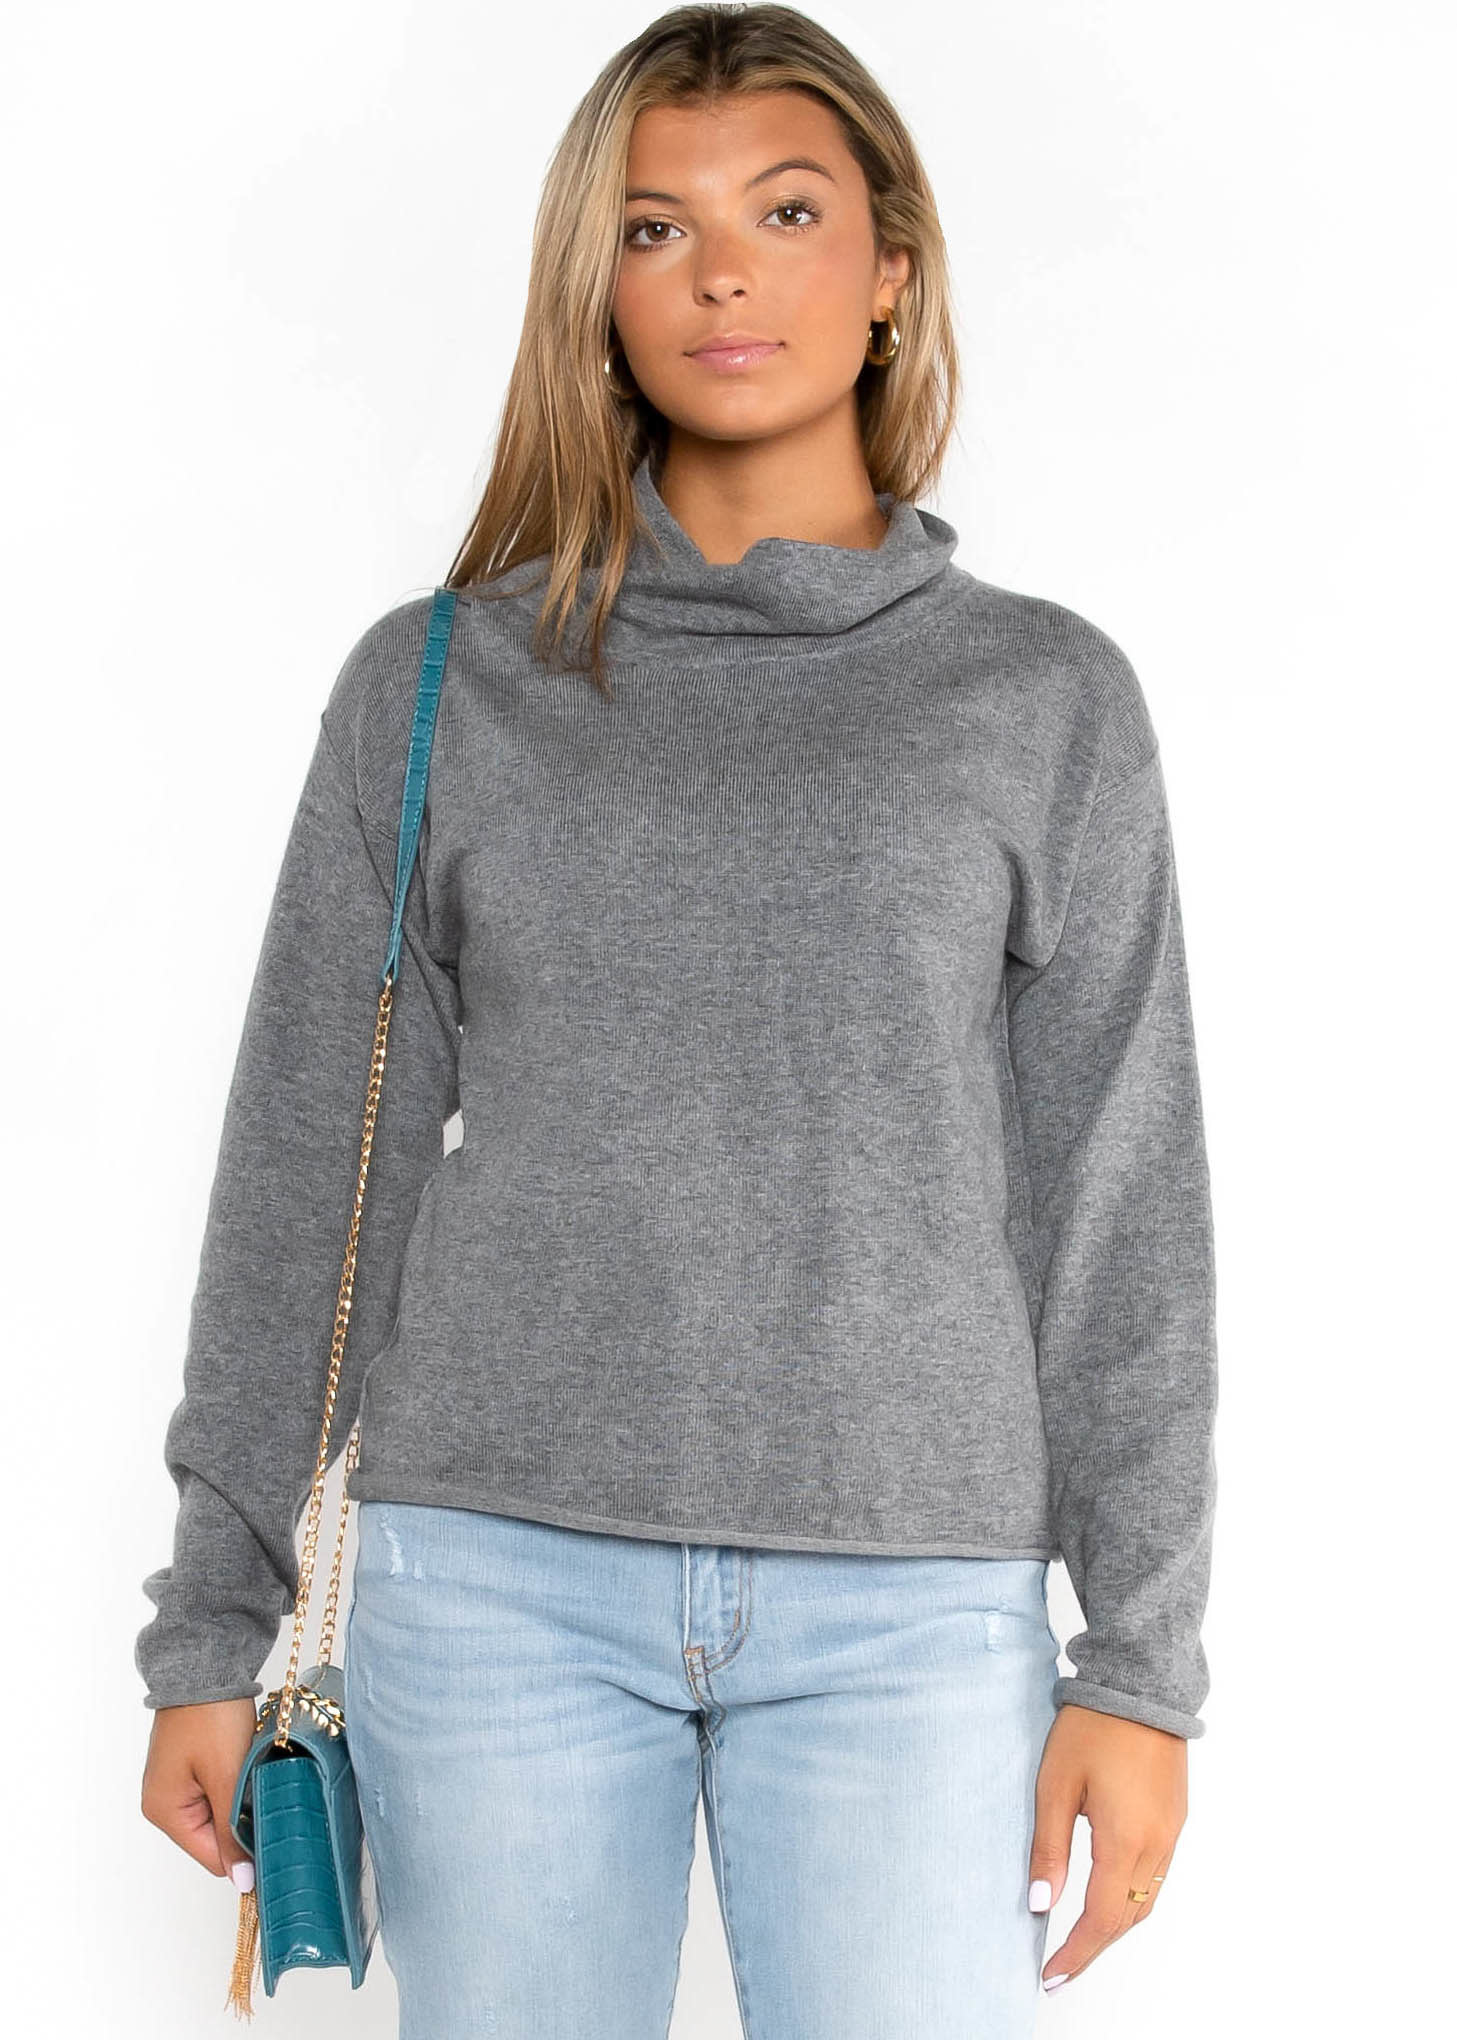 ANOTHER VICE COWL NECK SWEATER